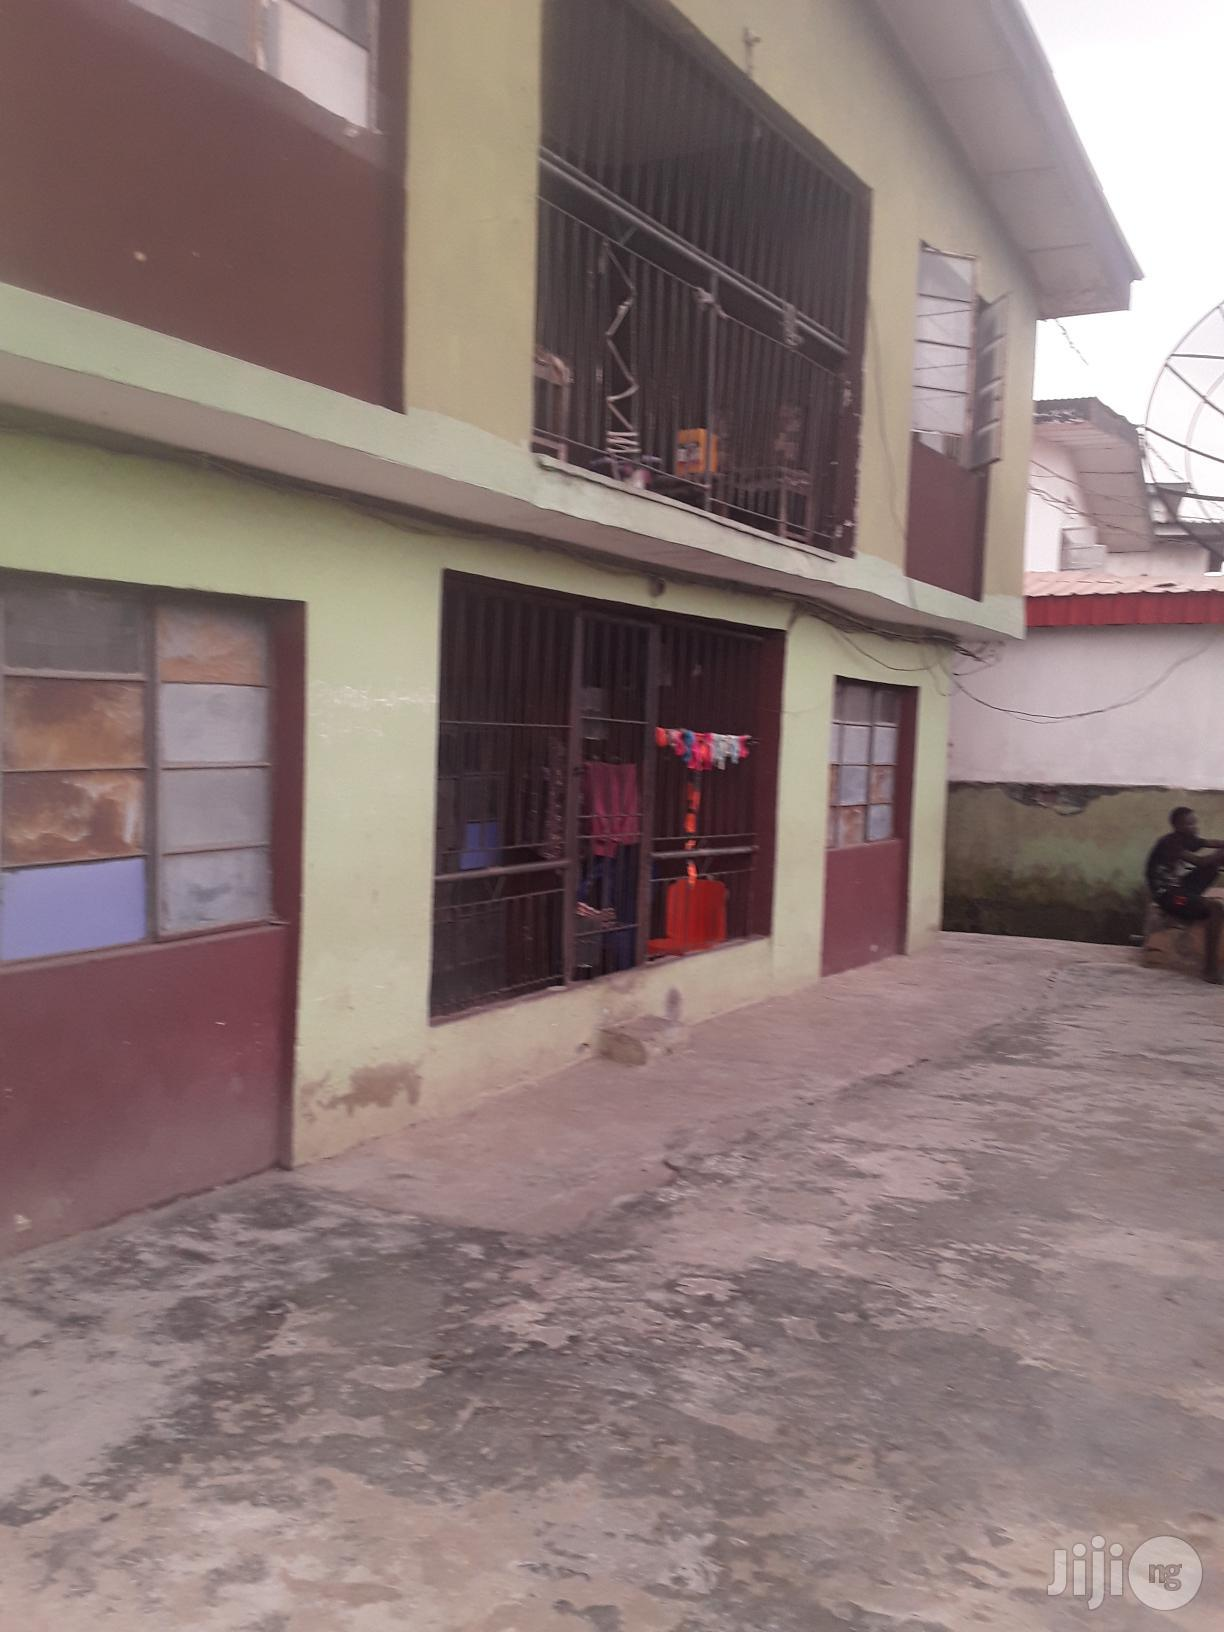 4units Of 3bedroom Flat For Sale At Off Akilo Road Ogba Ikeja   Houses & Apartments For Sale for sale in Ikeja, Lagos State, Nigeria